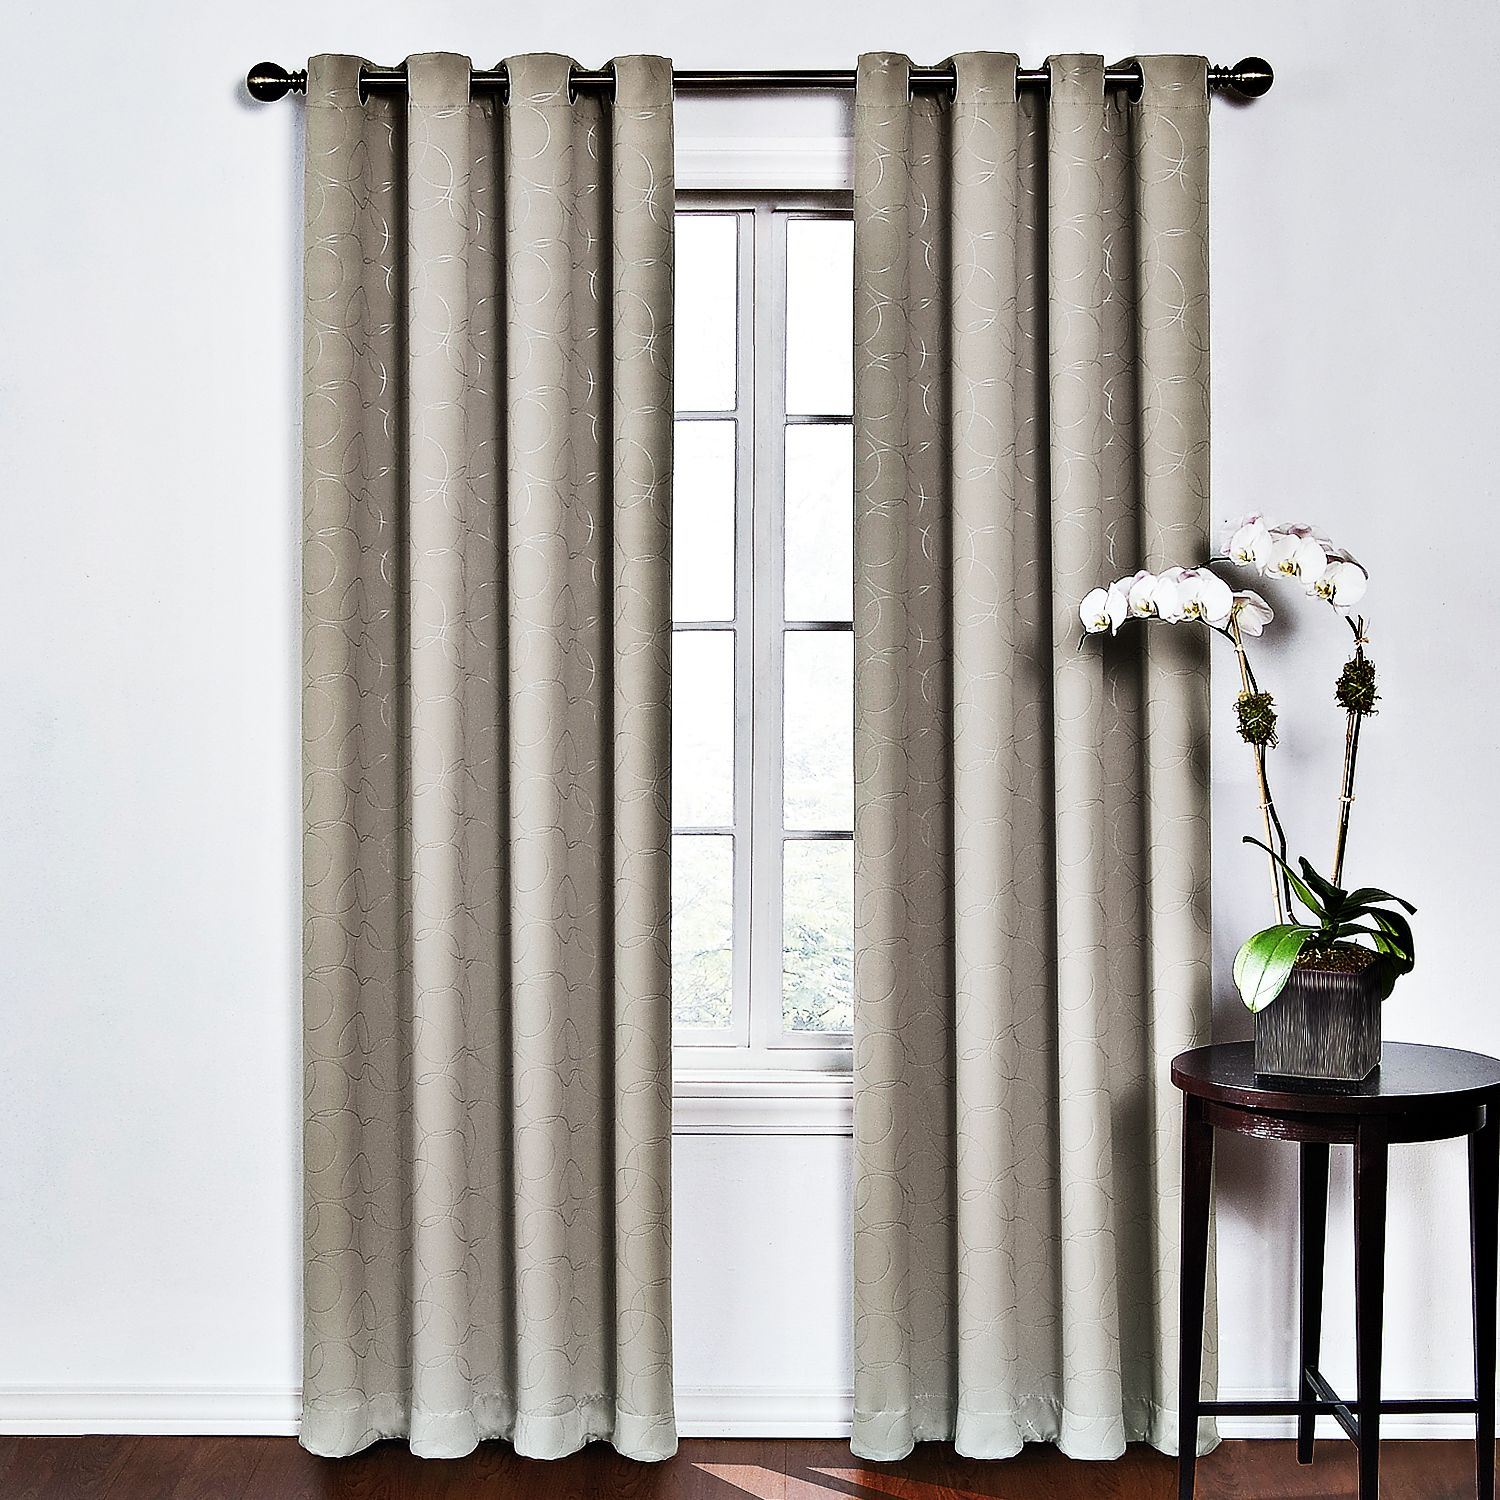 eclipse round u0026 round thermaweave blackout curtain - Blackout Curtain